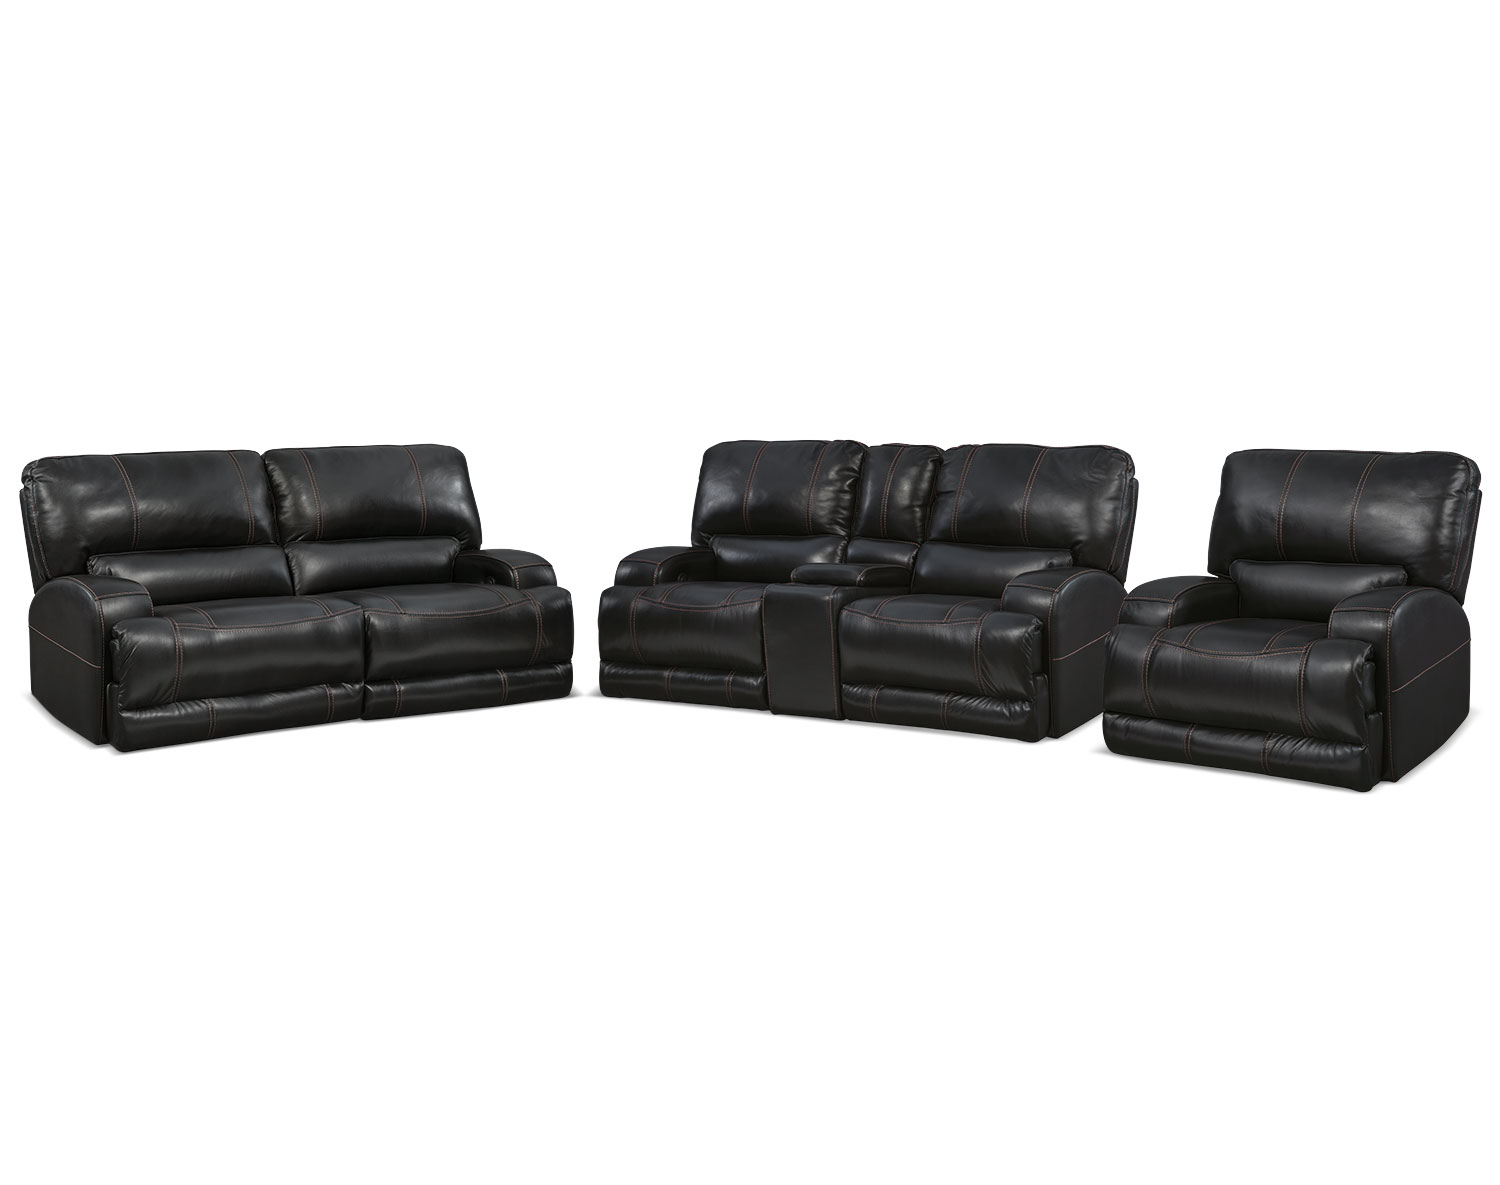 The Barton Black Living Room Collection